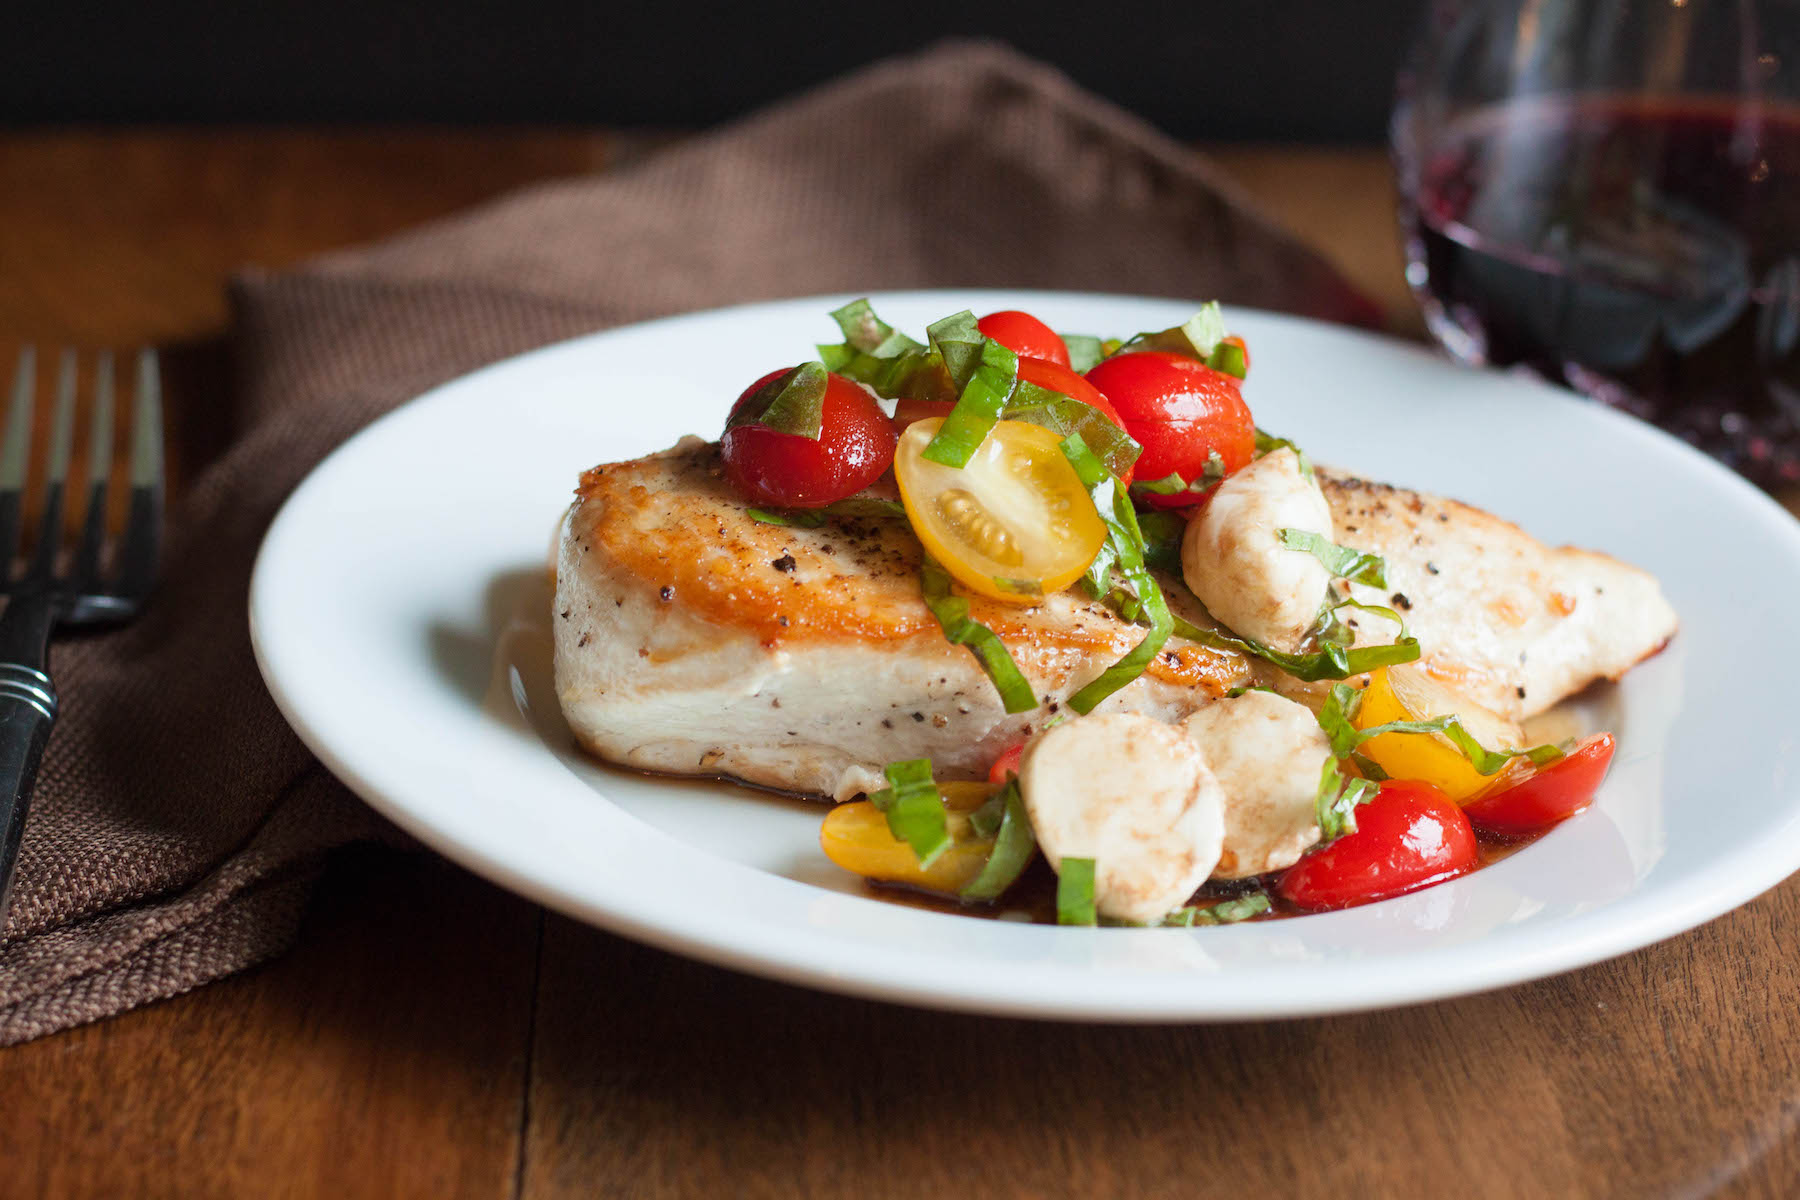 caprese-chicken-on-plate-with-red-wine.jpg